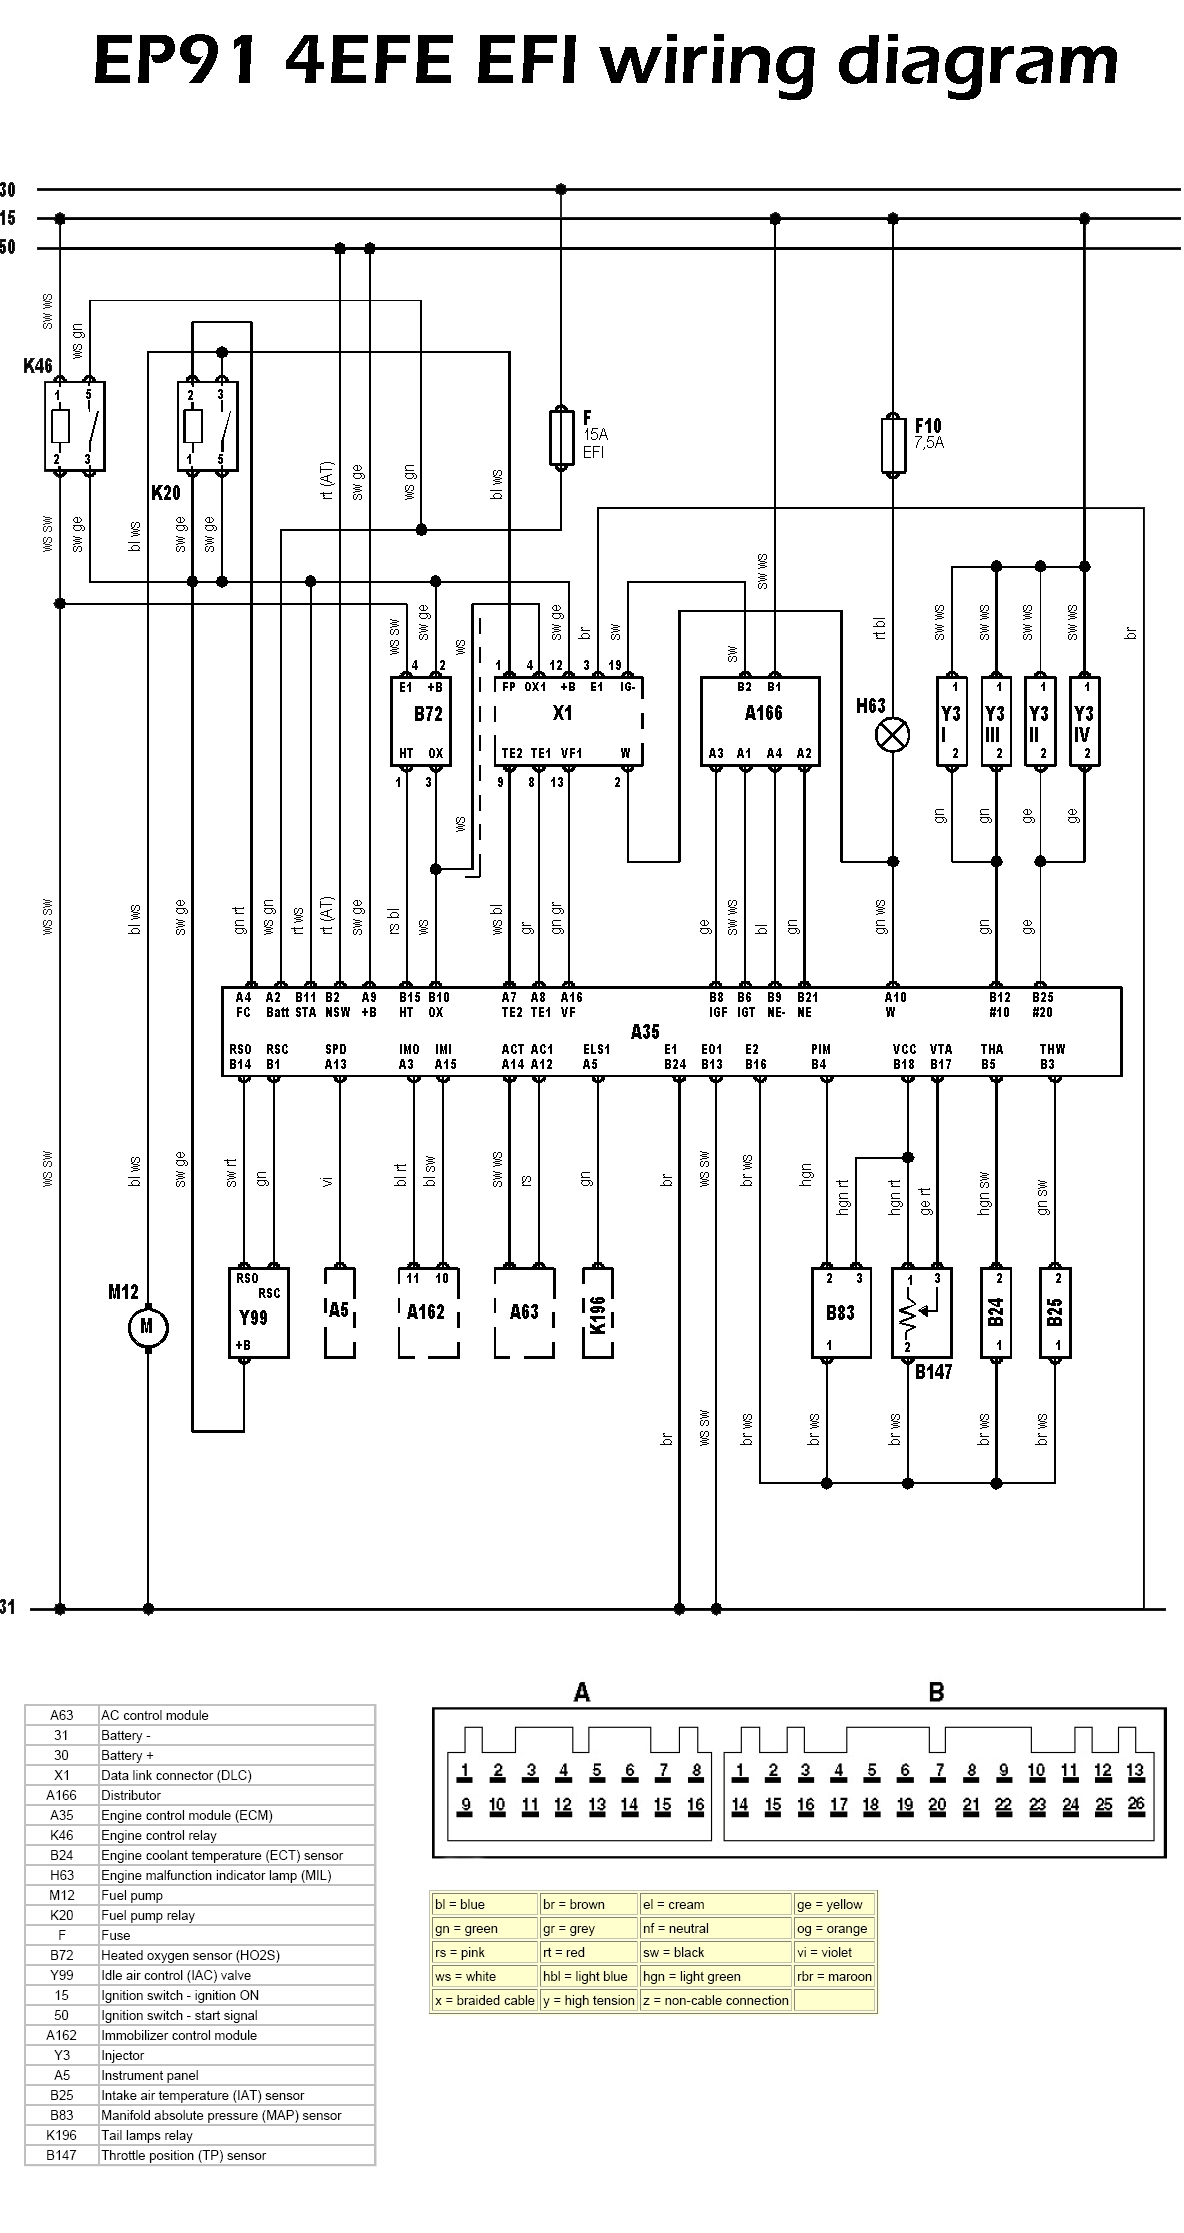 ep91_4efe_ecu_wiring_diagram toyota efi wiring diagram toyota wiring diagrams instruction ke70 wiring diagram pdf at soozxer.org